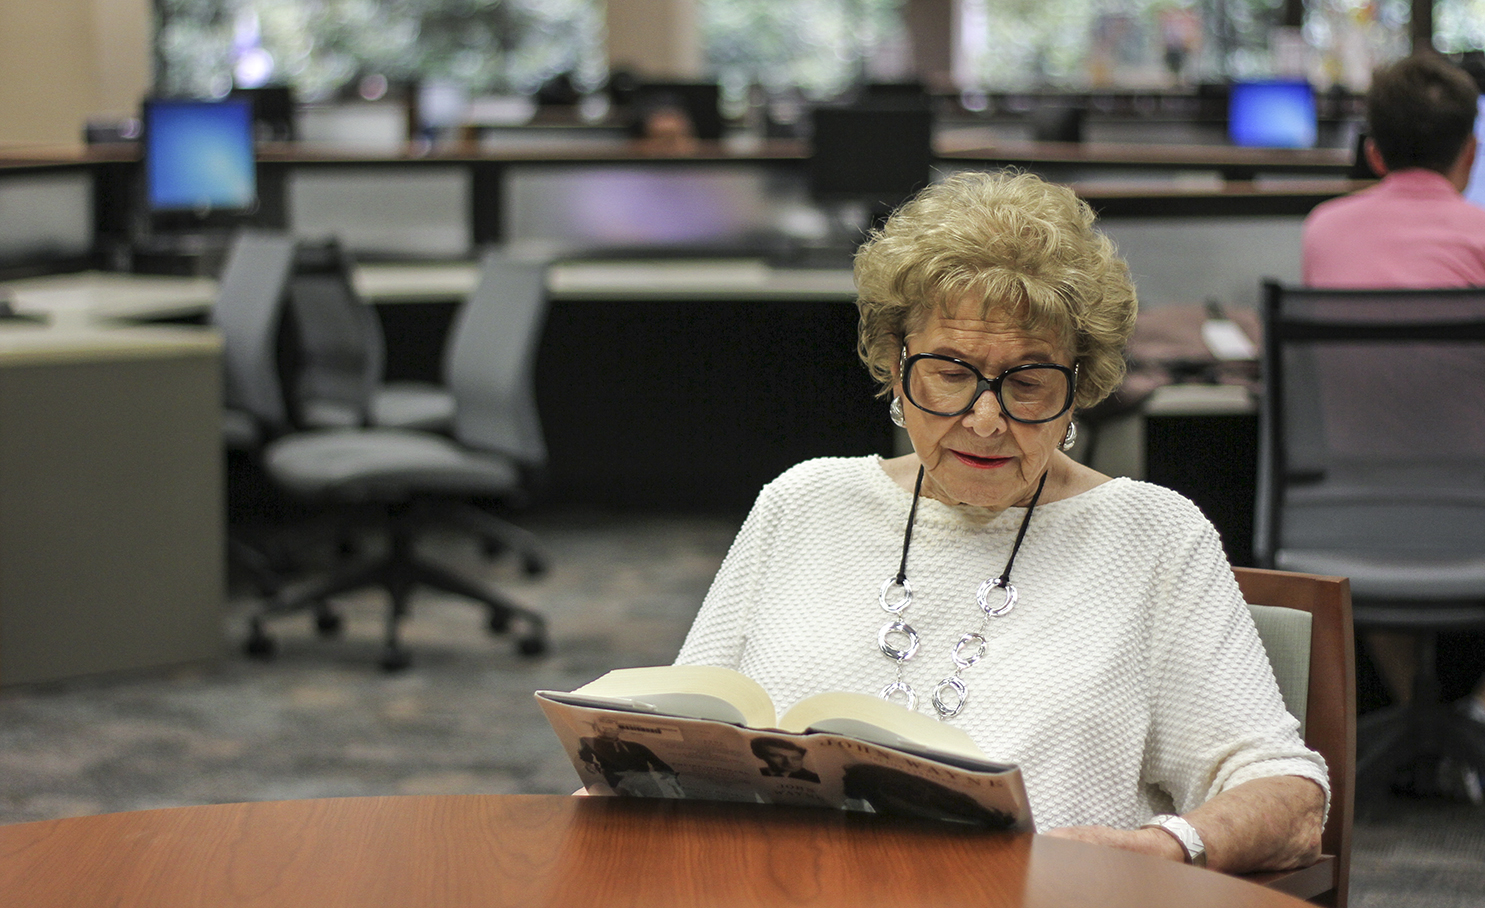 Faculty, students remember UTD's oldest student who passed away earlier this month